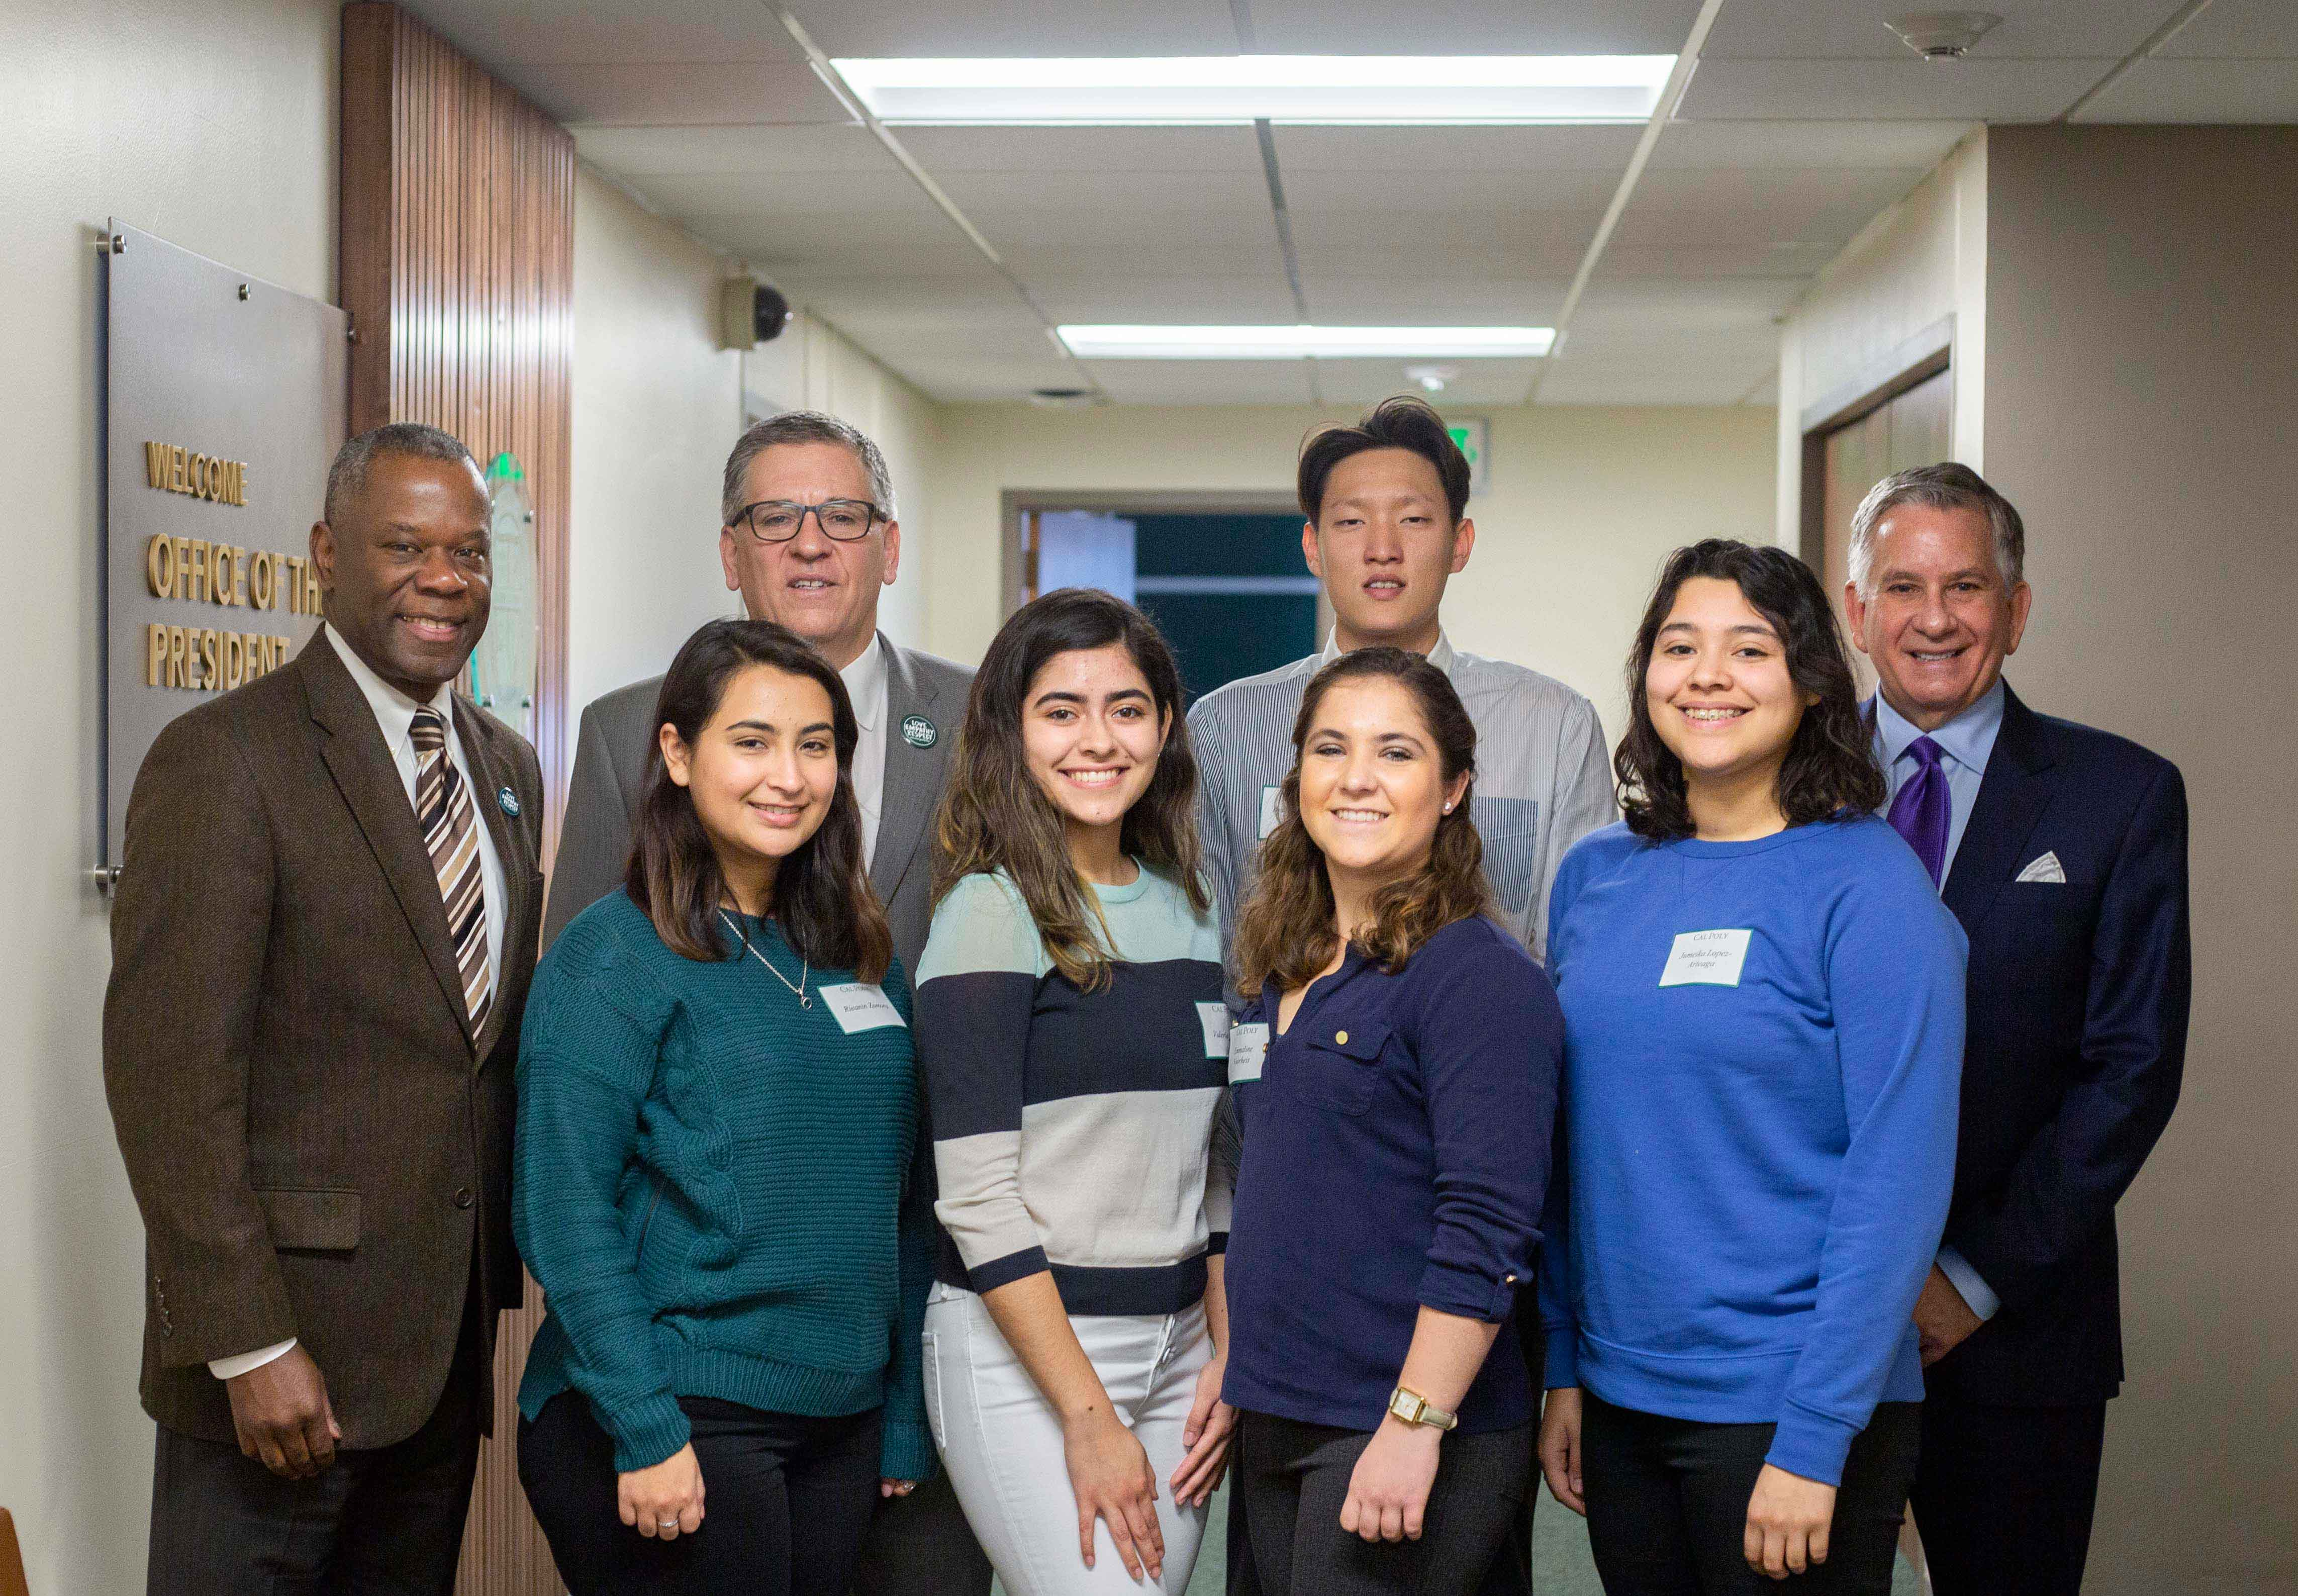 CommonSpirit Health Chief Human Resources Officer Darryl Robinson; Cal Poly President Jeffrey D. Armstrong; student Byungcheol So of Torrance; and Alan Iftinuik, CEO of Dignity Health's French Hospital Medical Center. Not shown are students Serena Cortez of Menifee; and Madelin Skinner of Santa Rosa.